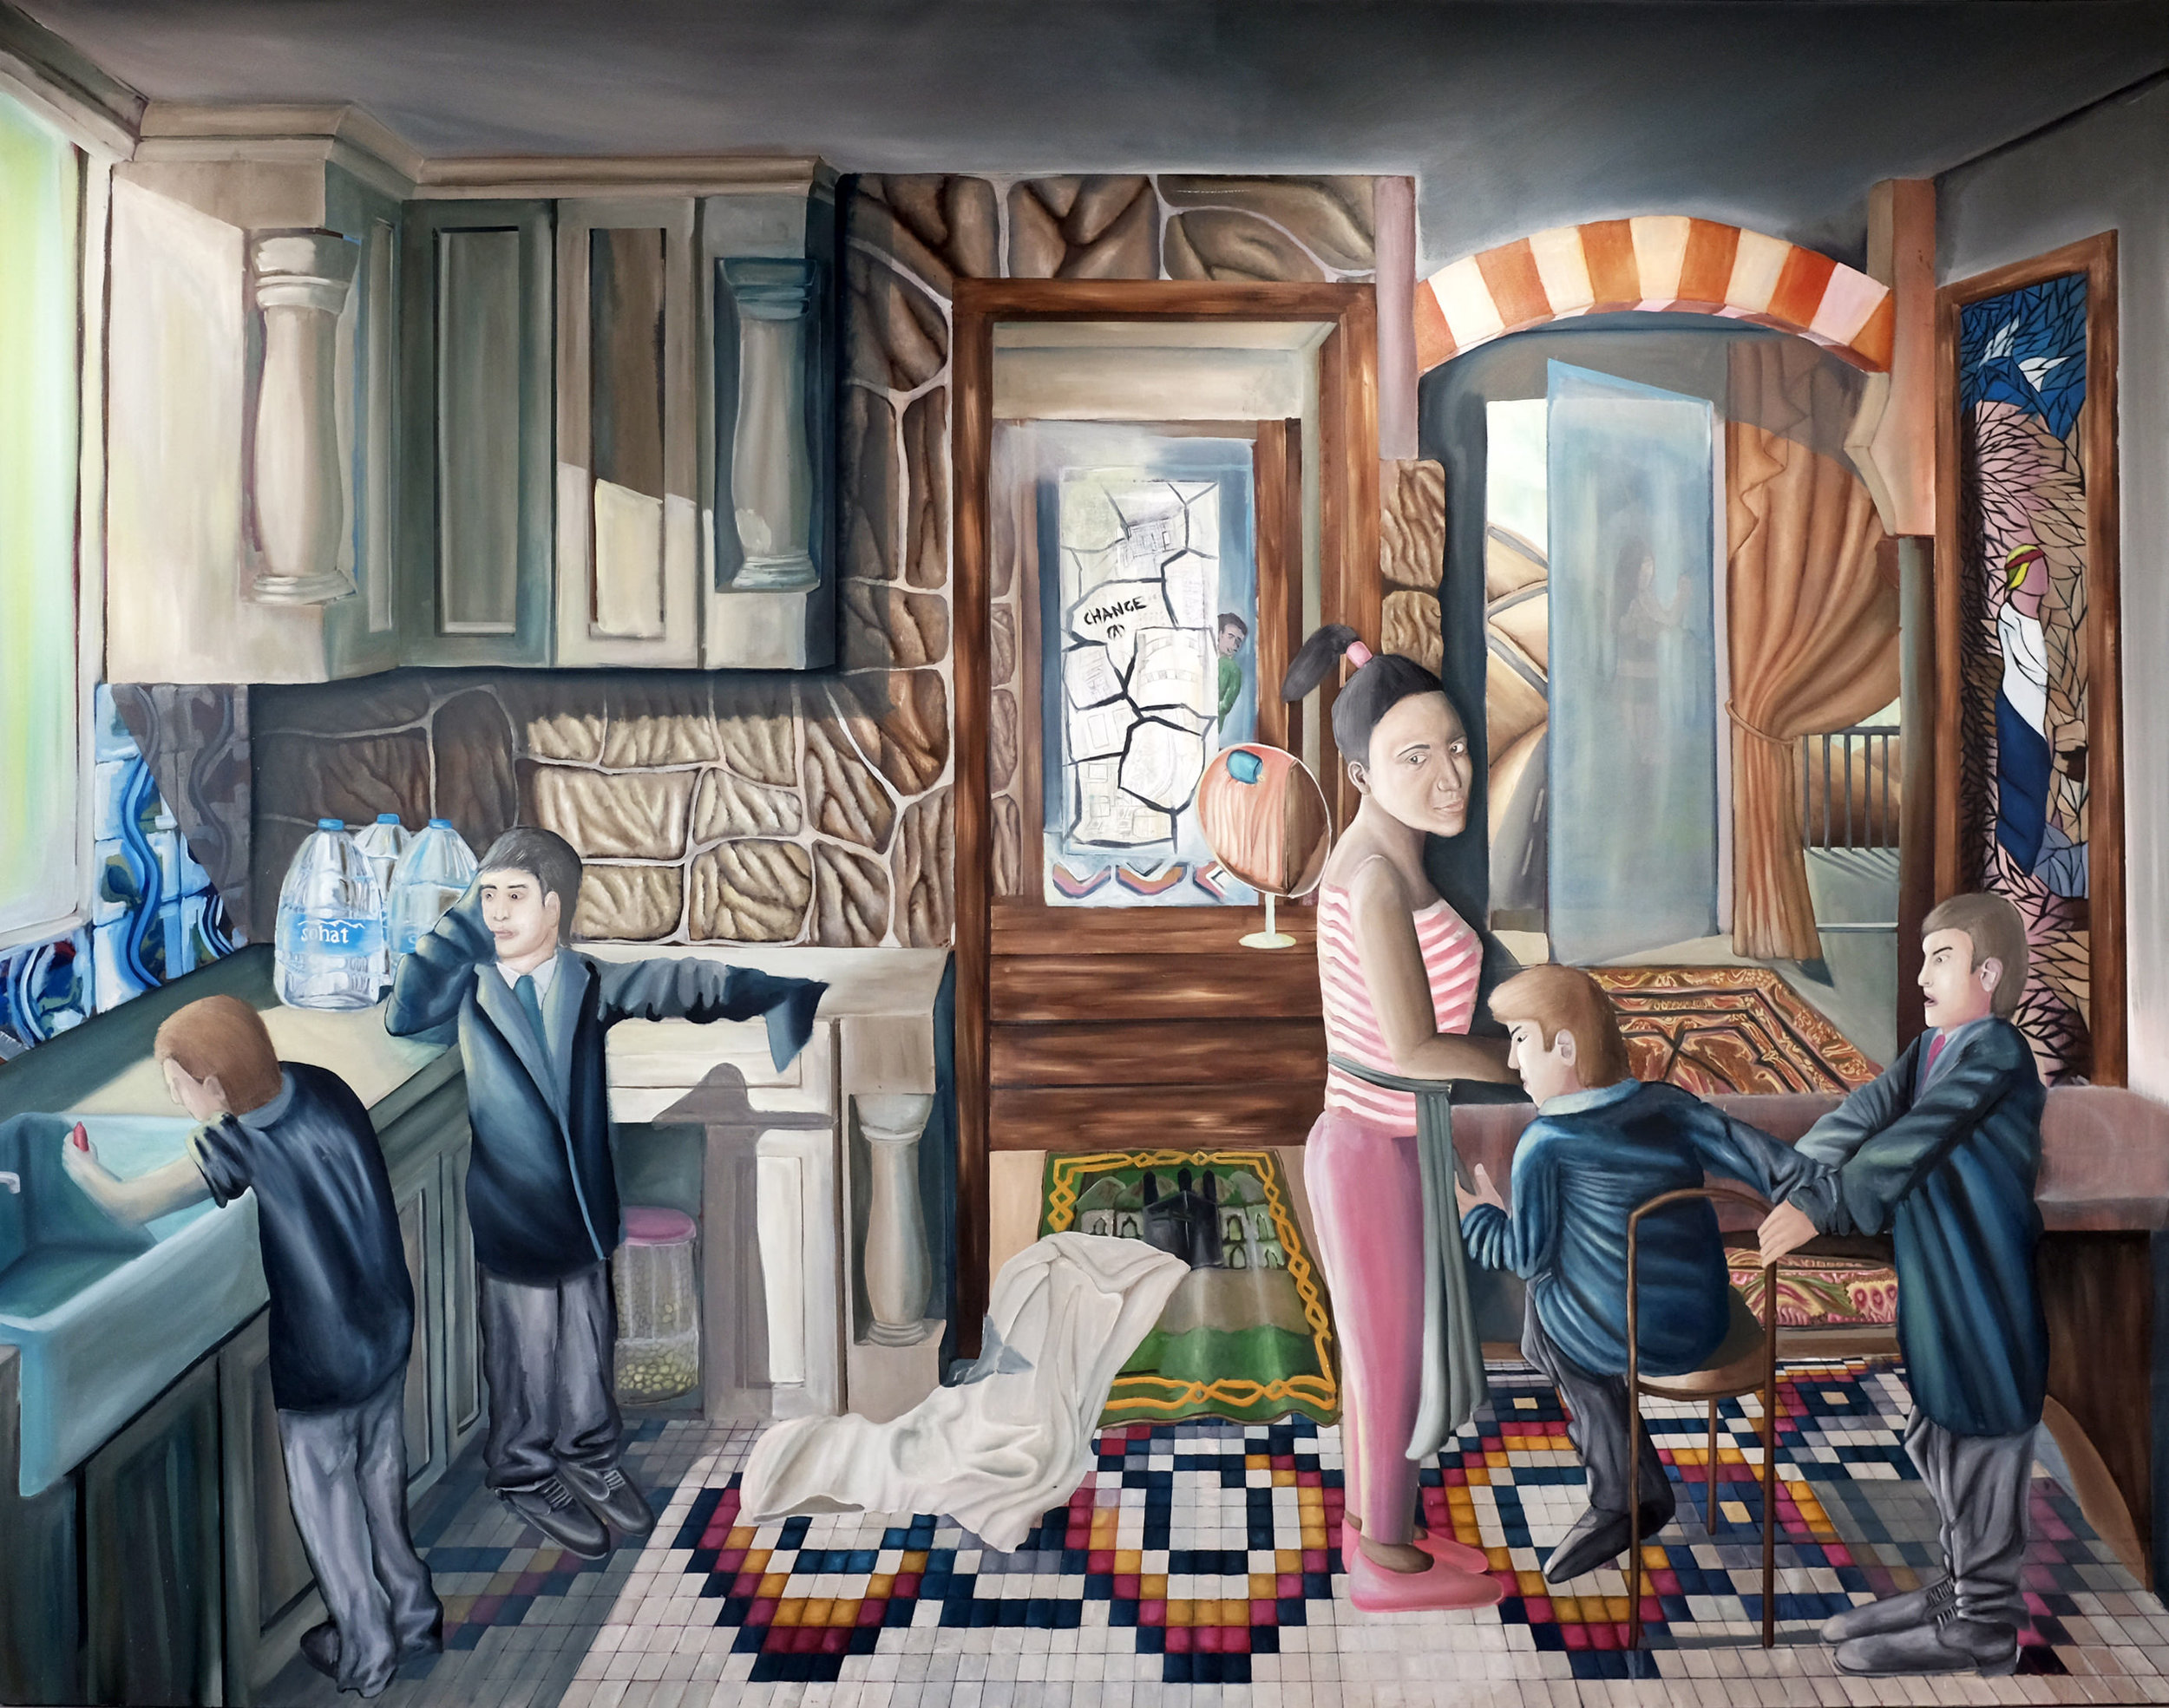 Karim Baradei, The Maid, Oil on canvas, 250 cm 320 cm x 4 cm,  https://baradeikarim.wixsite.com/mysite